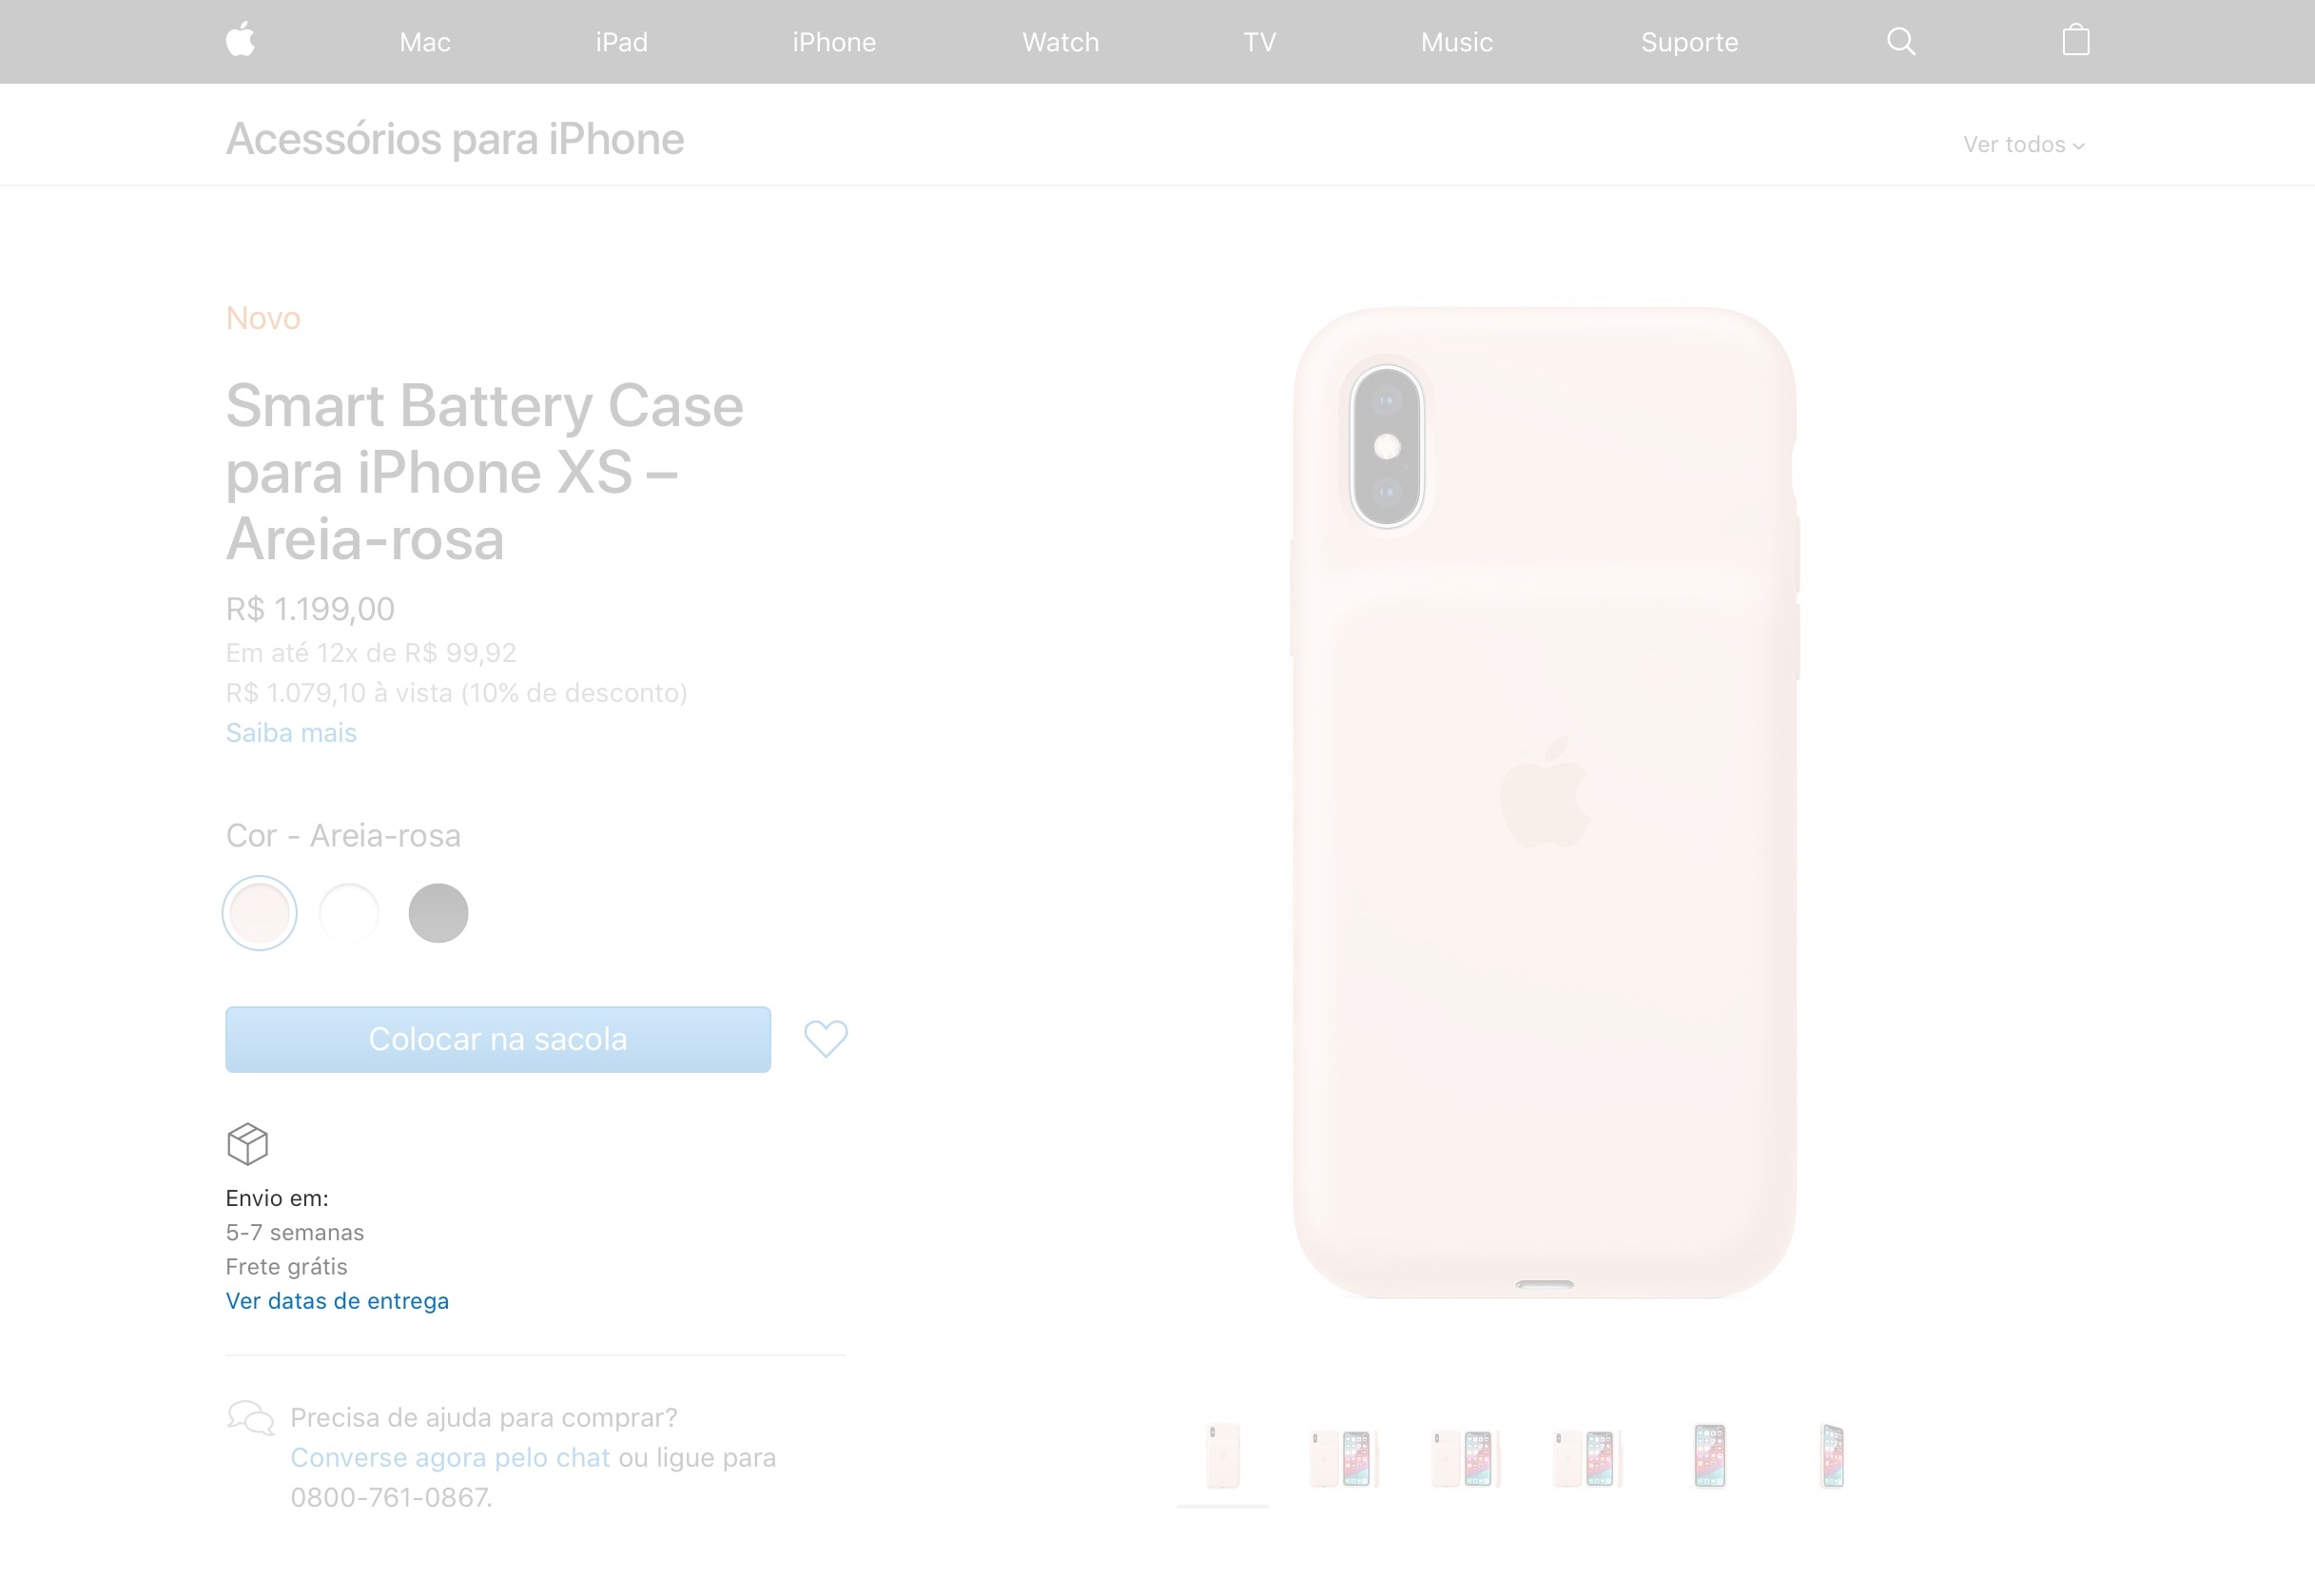 Estoque da Smart Battery Case para iPhone XS